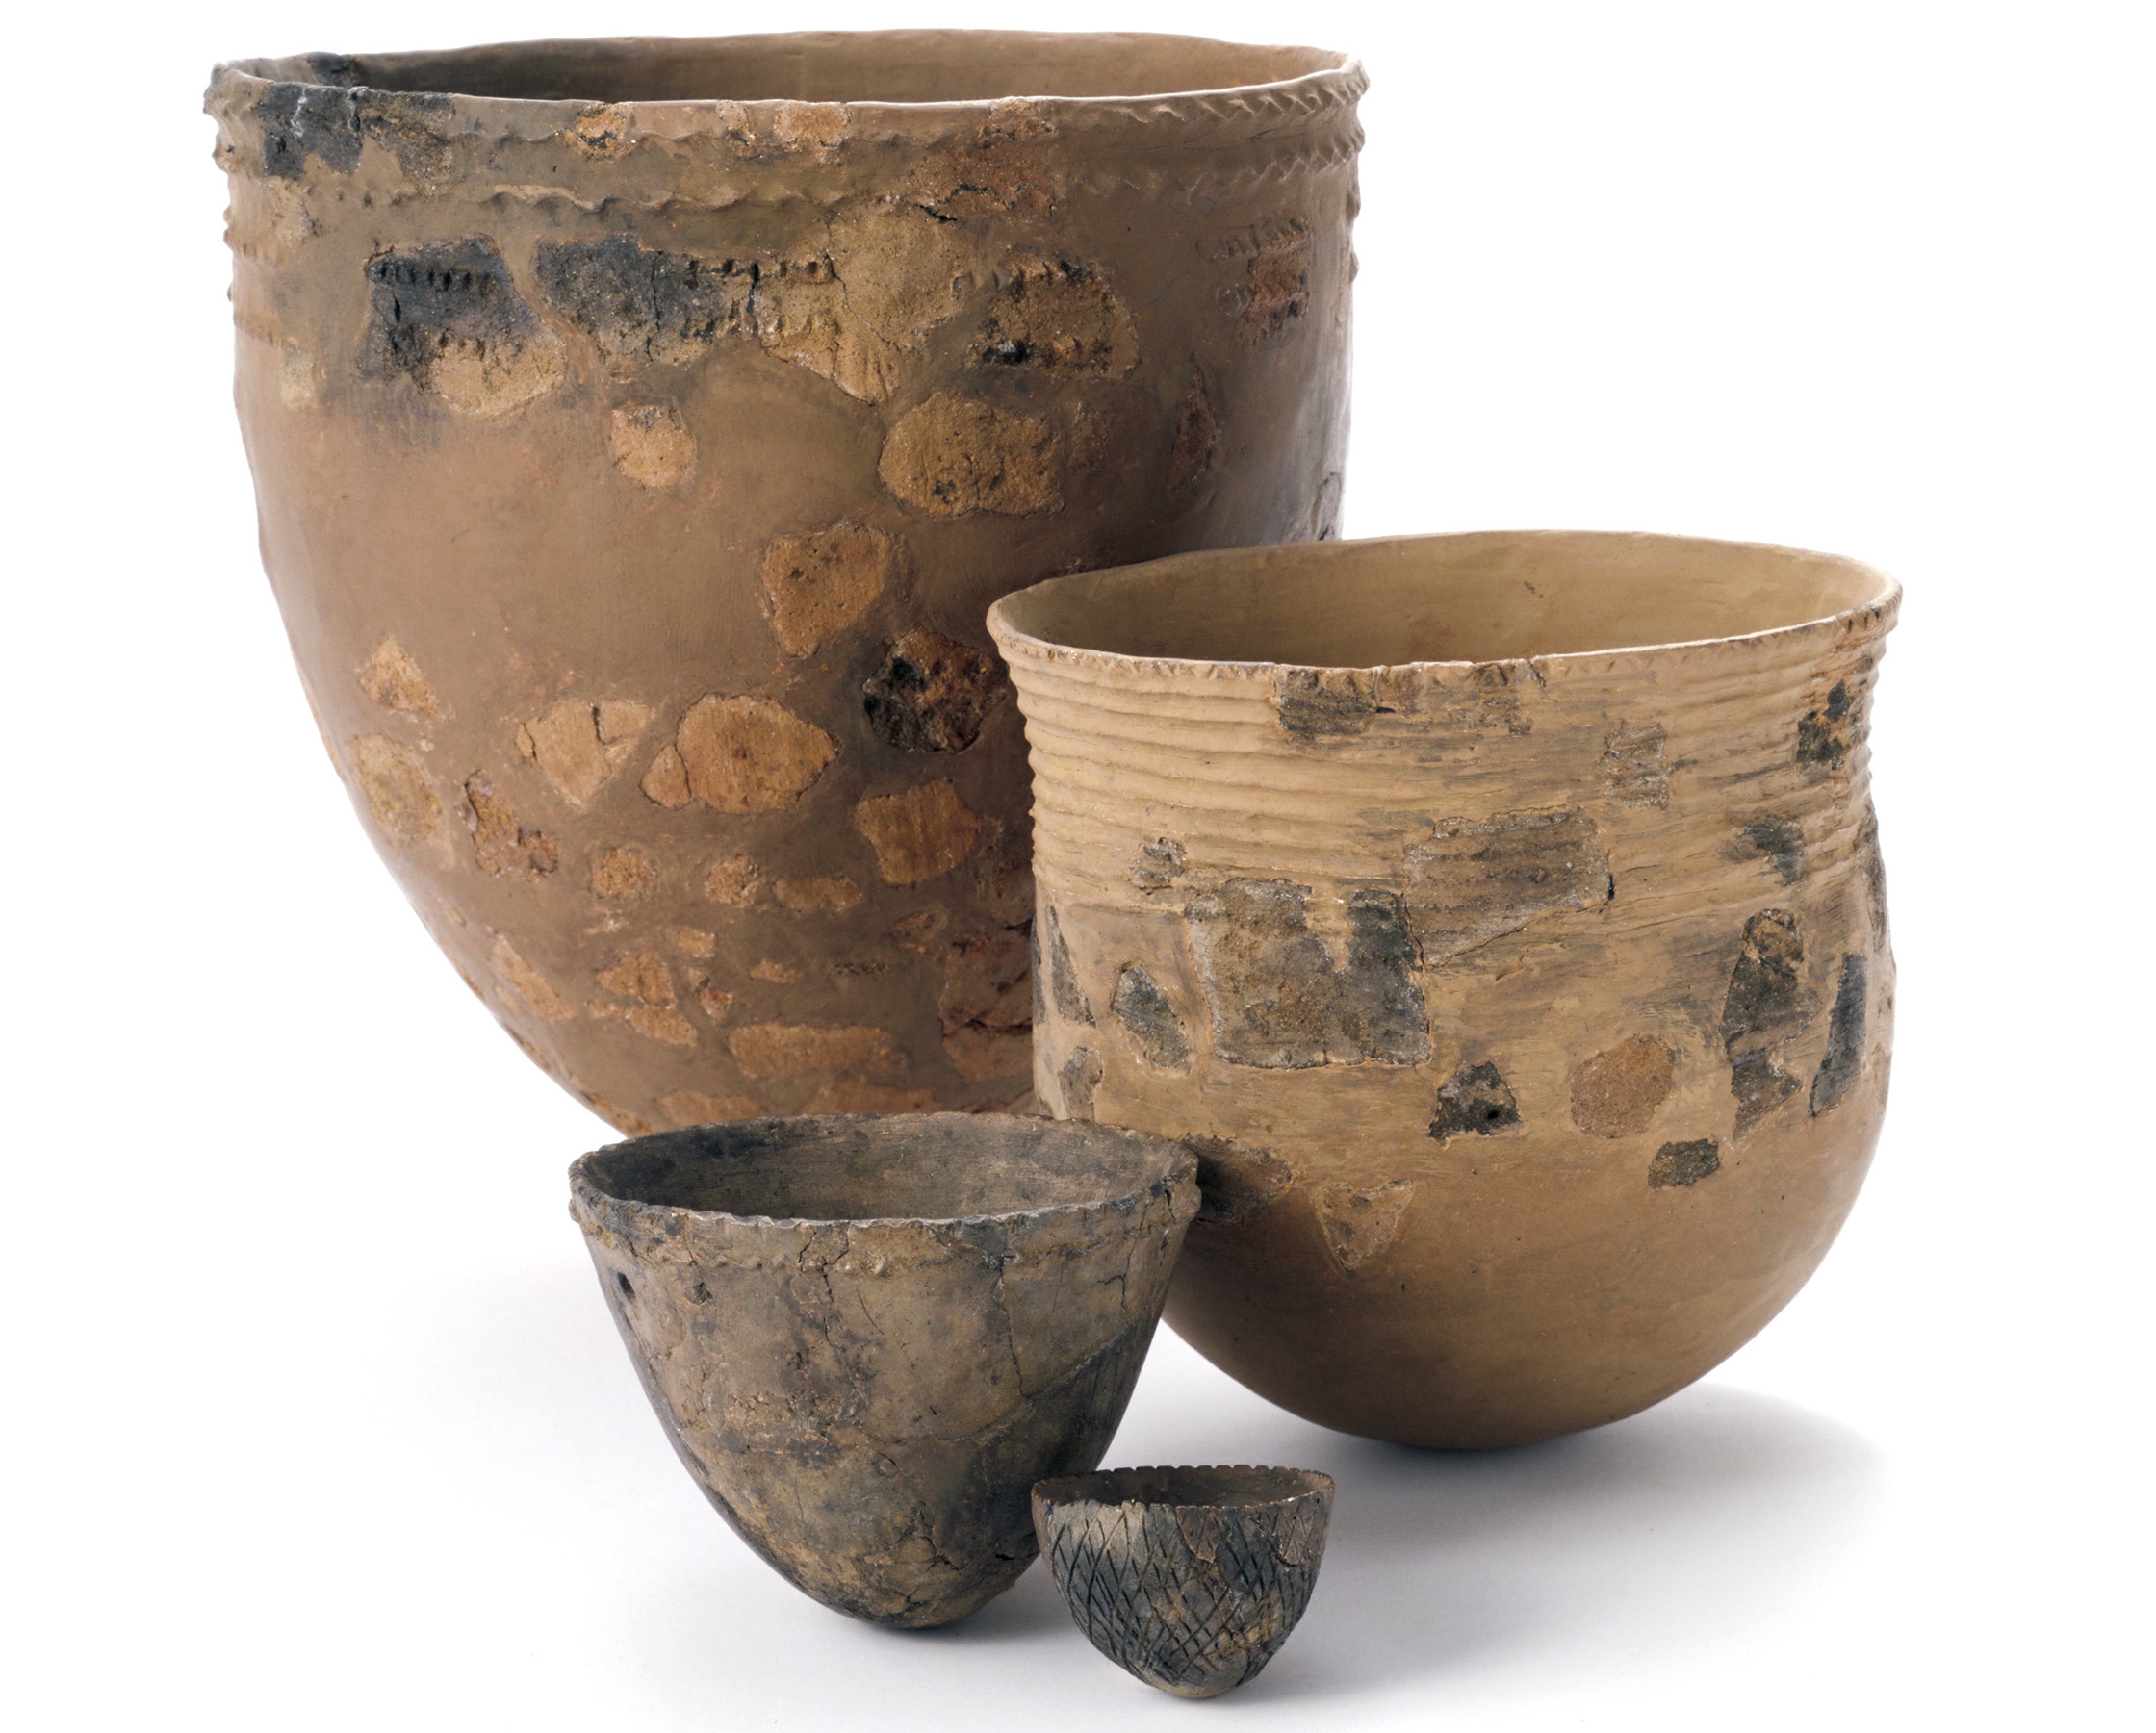 The art of pottery increased as fishing became a central part of daily life towards the end of the last Ice Age.